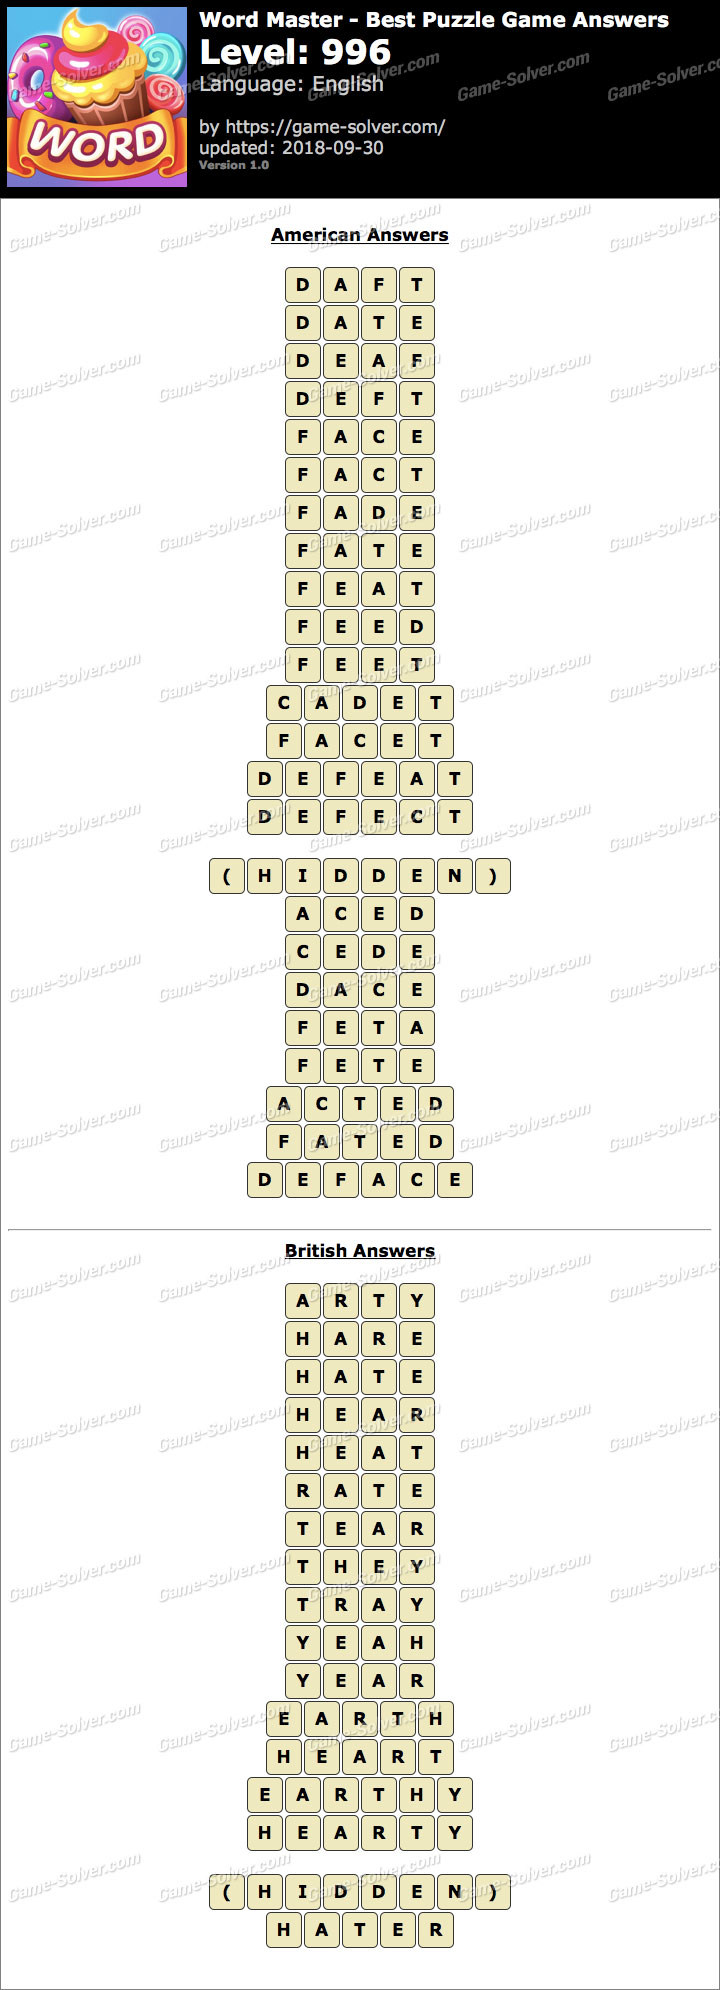 Word Master-Best Puzzle Game Level 996 Answers